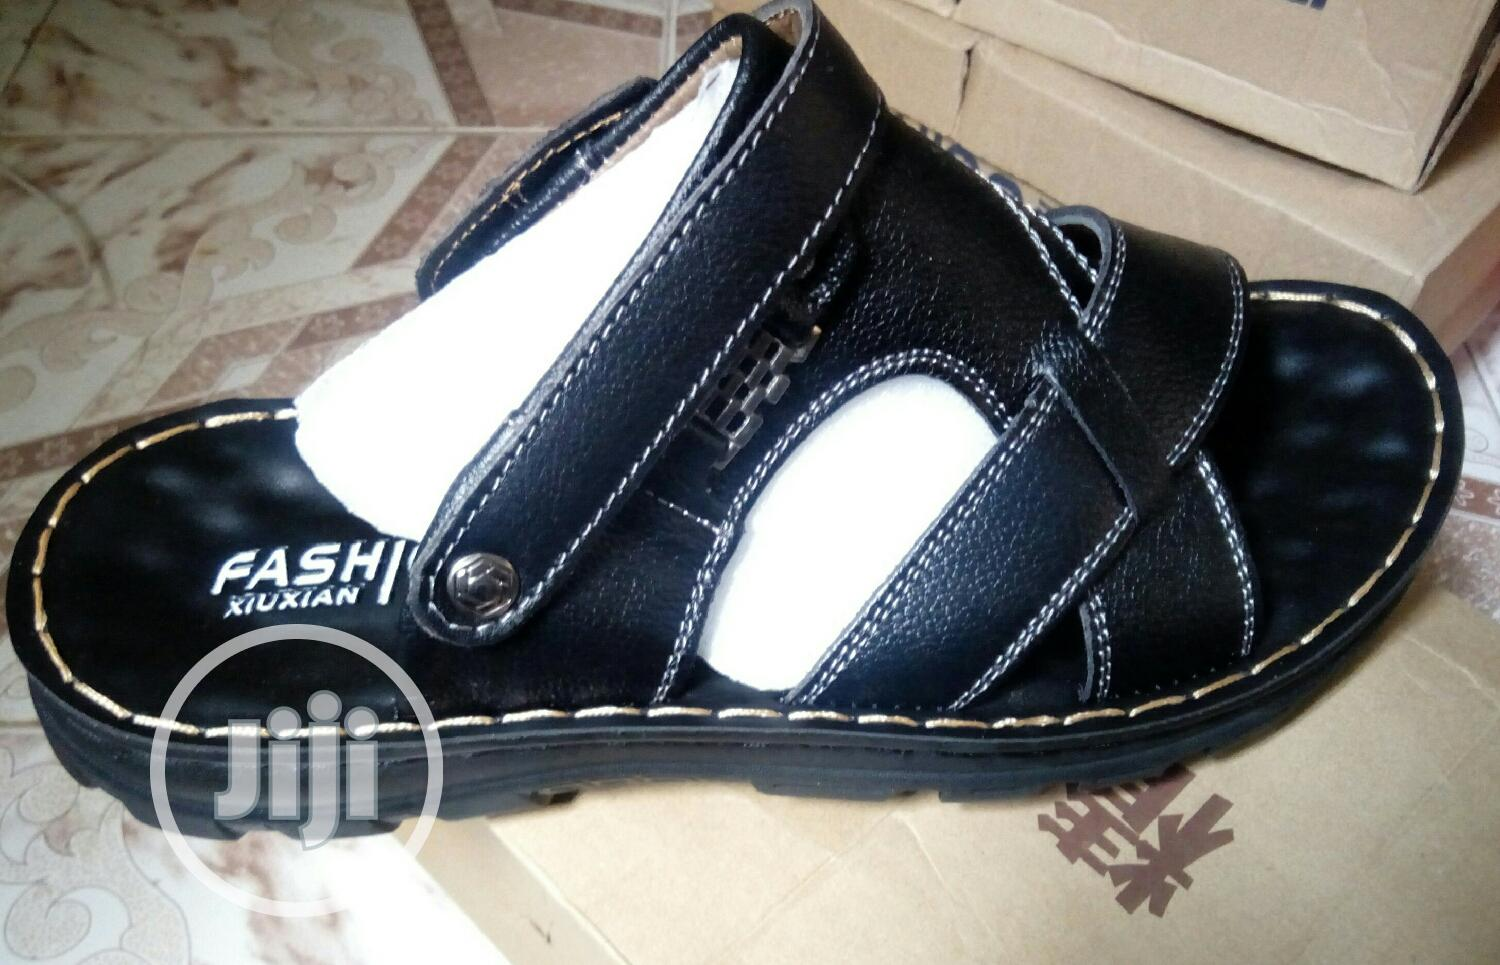 Affordable Leather Sandals With Good Quality | Shoes for sale in Benin City, Edo State, Nigeria